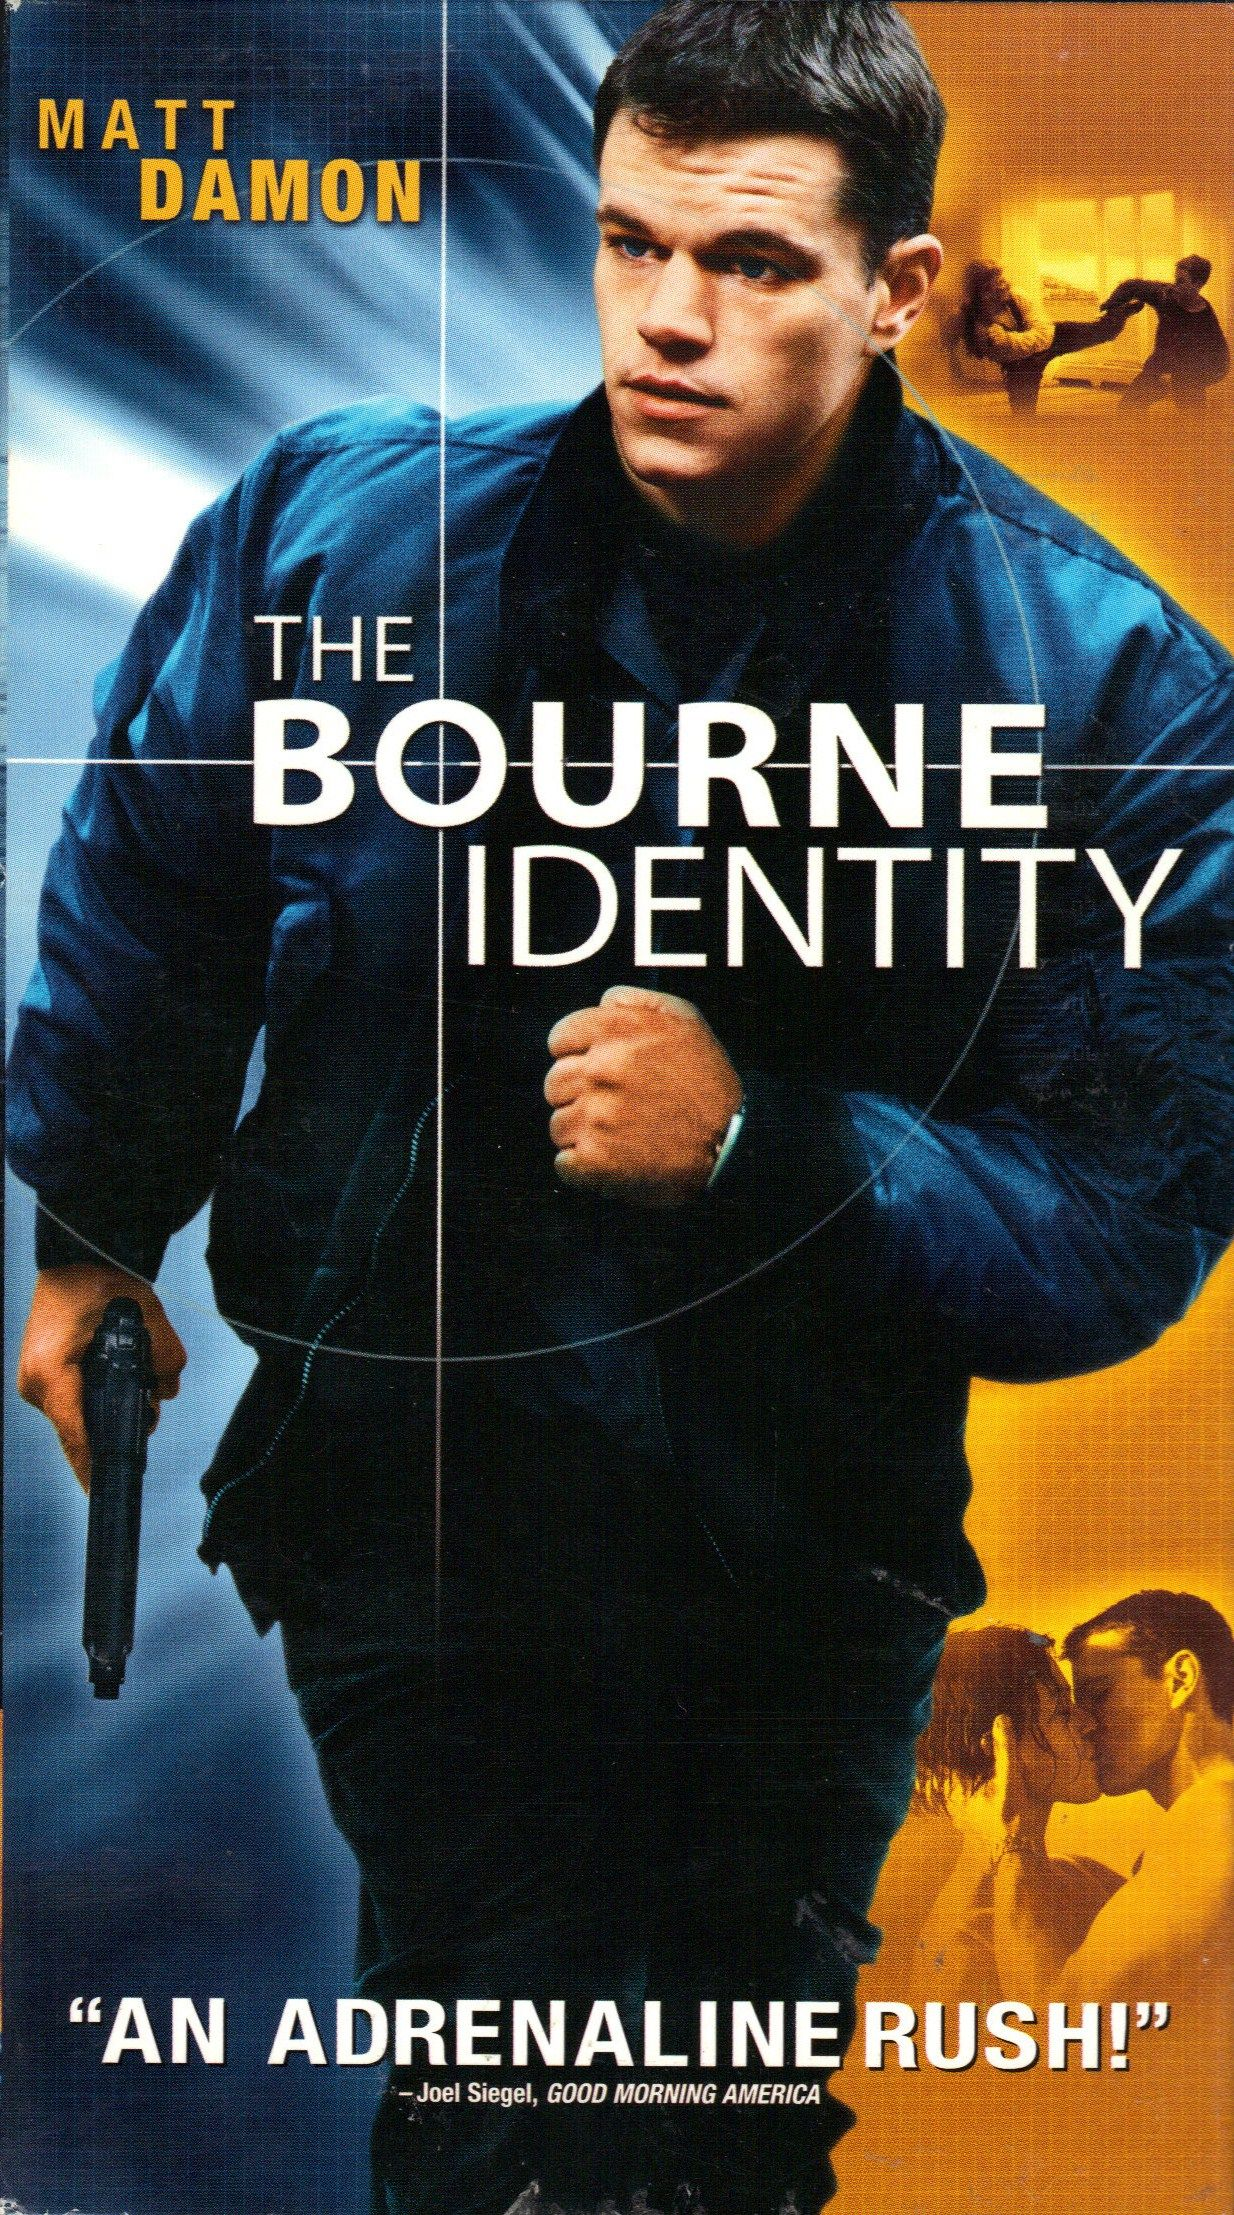 The Bourne Identity will always have a special place in my heart